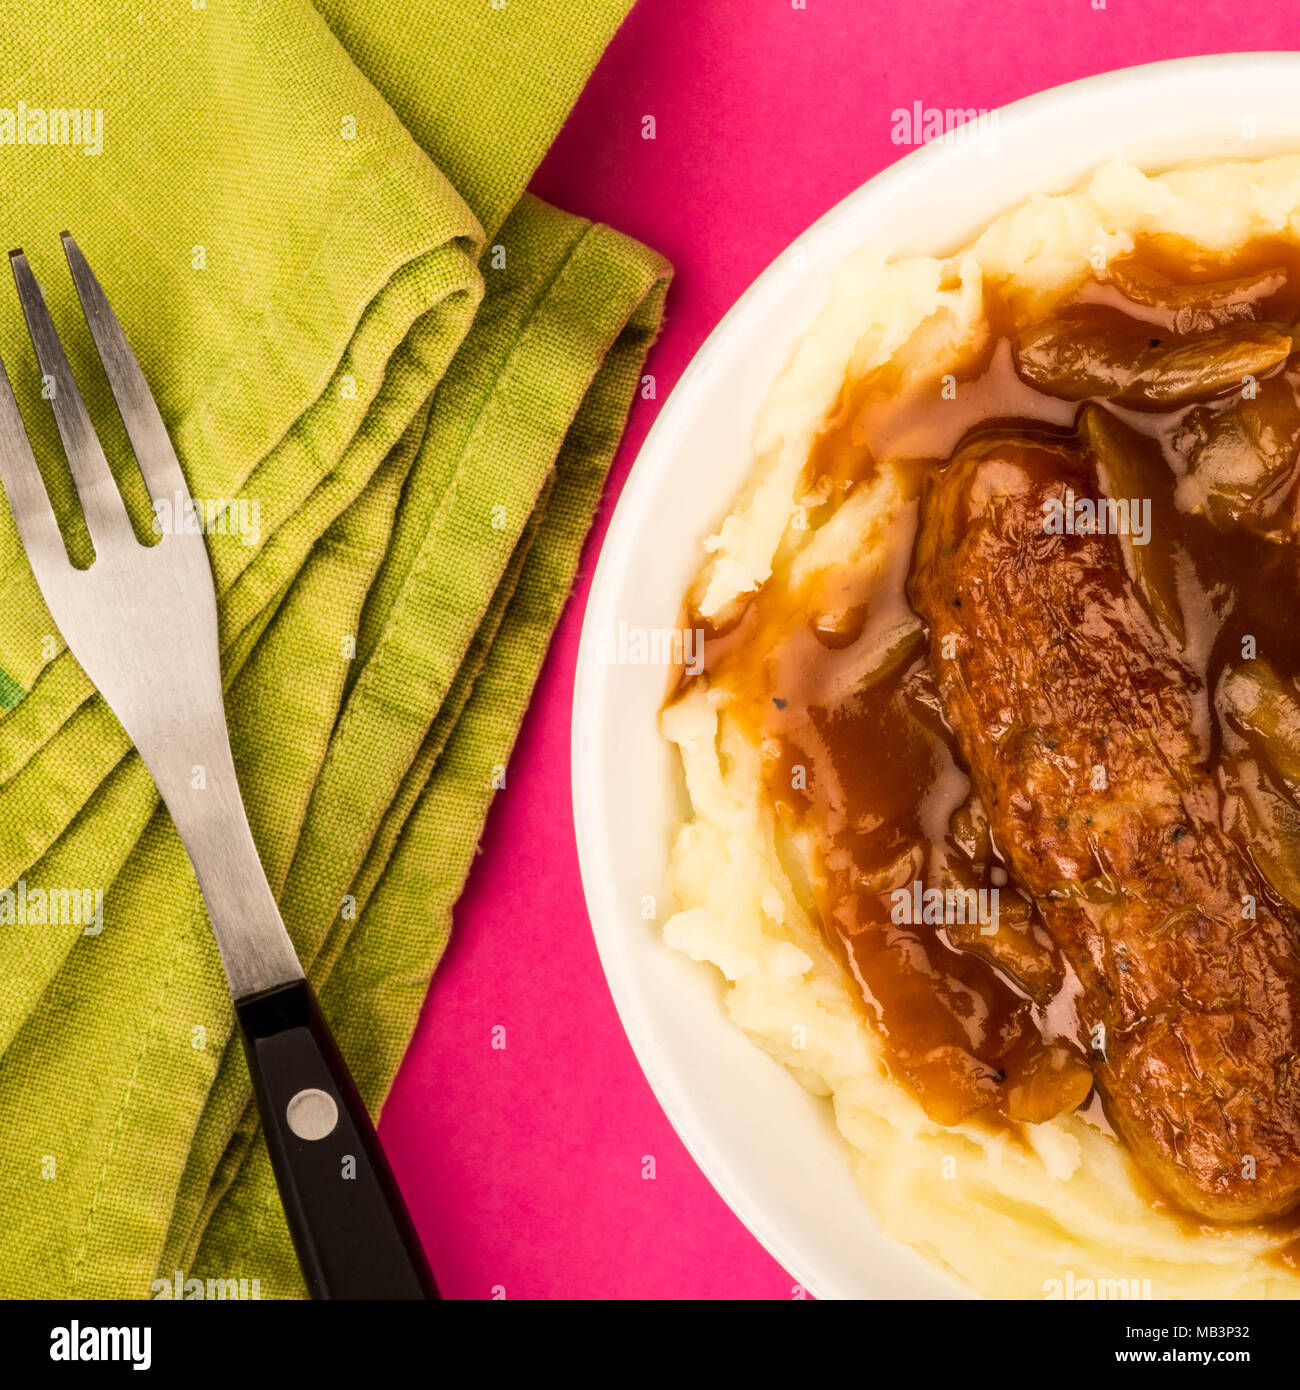 Sausage And Mashed Potatoes With Onion Gravy Against A Pink Background - Stock Image